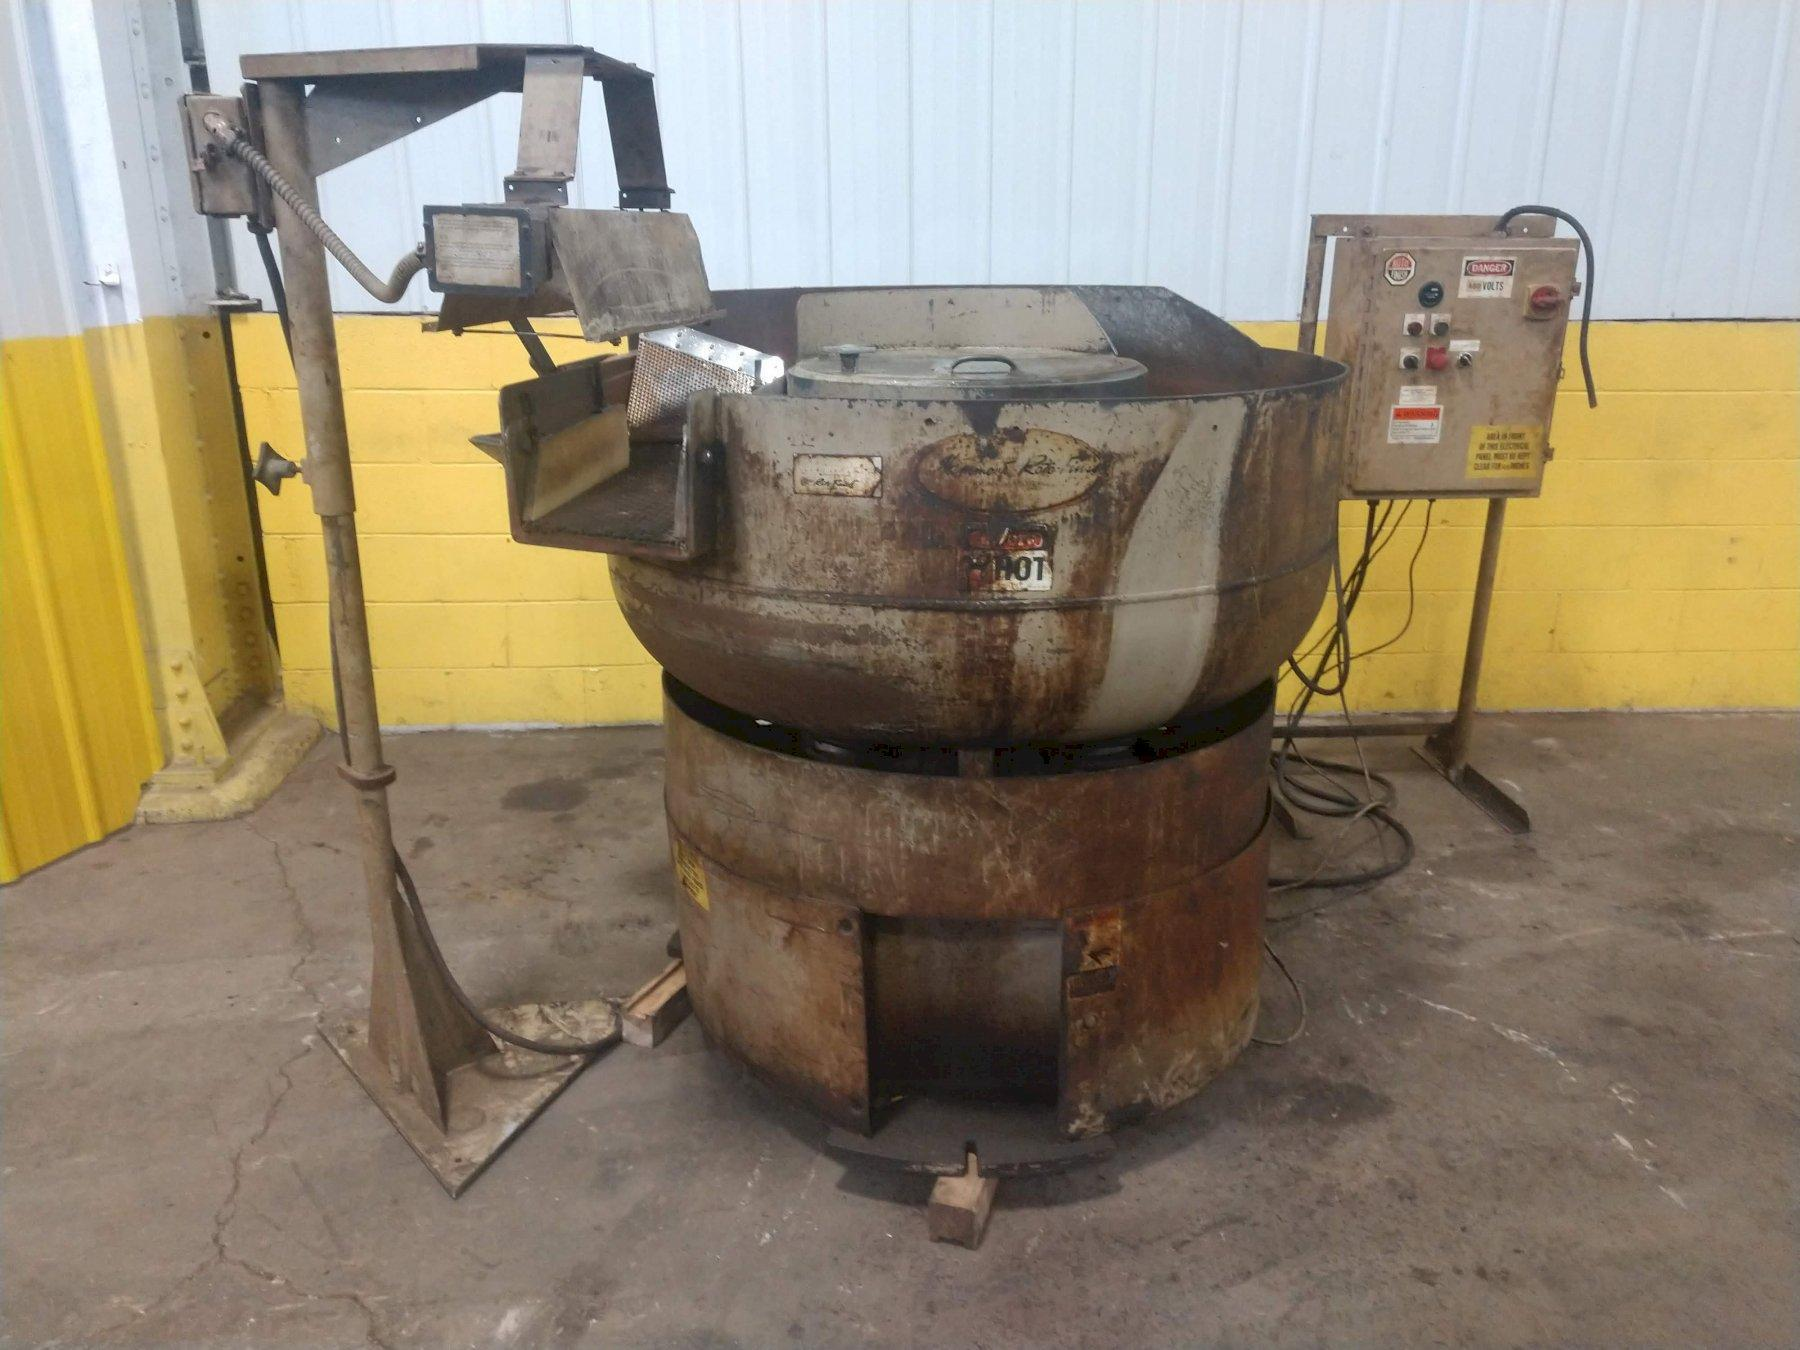 "5 CUBIC FOOT ROTO-FINSIH MODEL #ER-405D-00-A30 ""SPIRATRON"" VIBRATORY BOWL FINISHER"